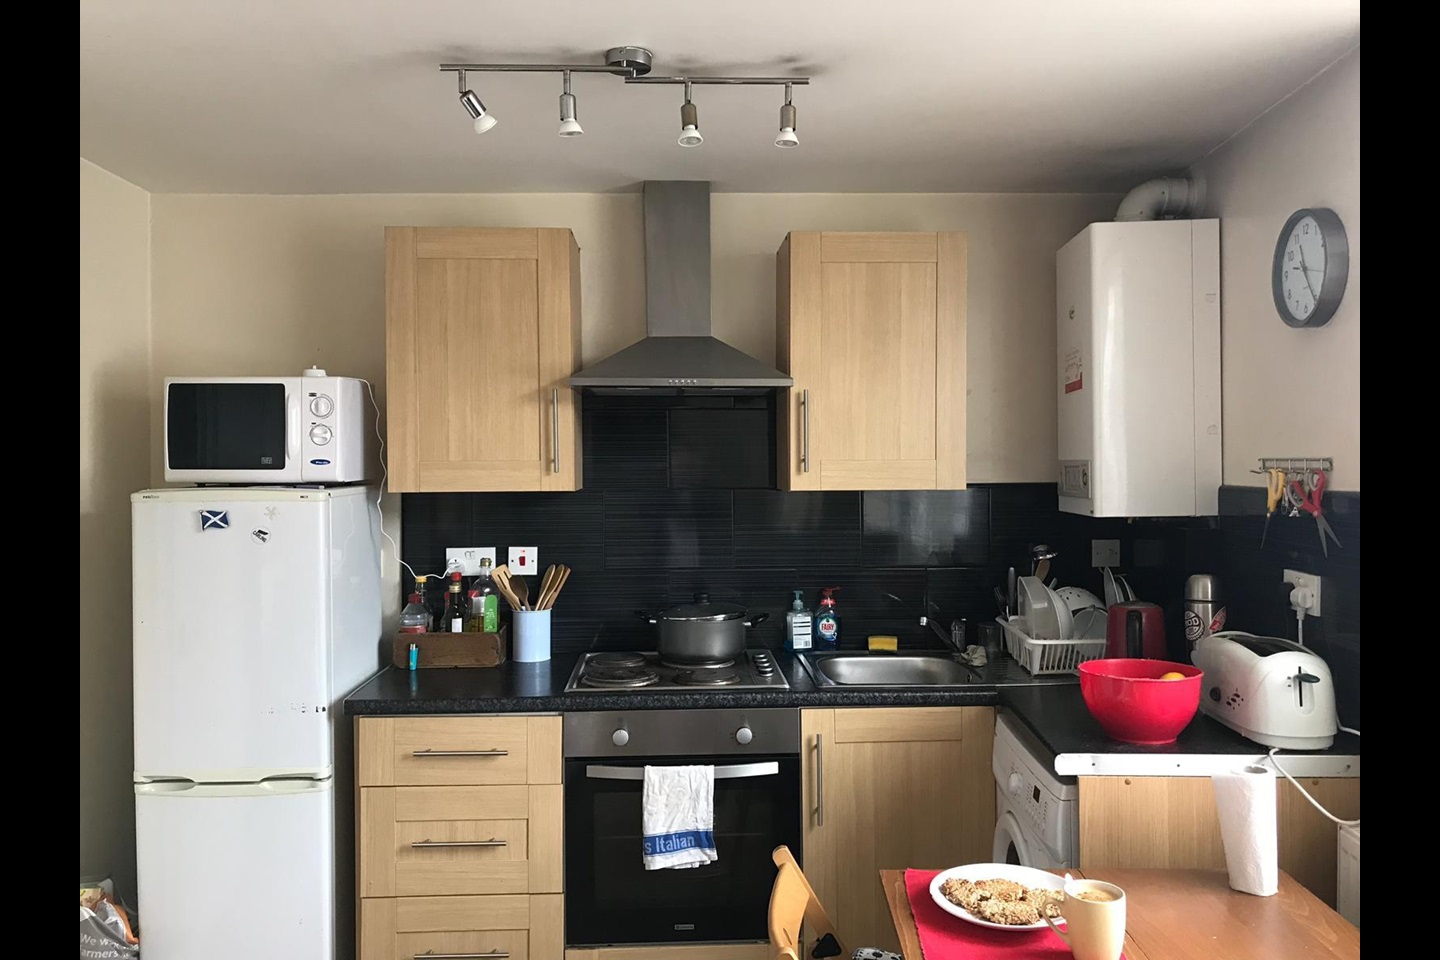 One Bed Flat Leeds Leeds 1 Bed Flat Kirkstall Lane Ls5 To Rent Now For 545 00 P M